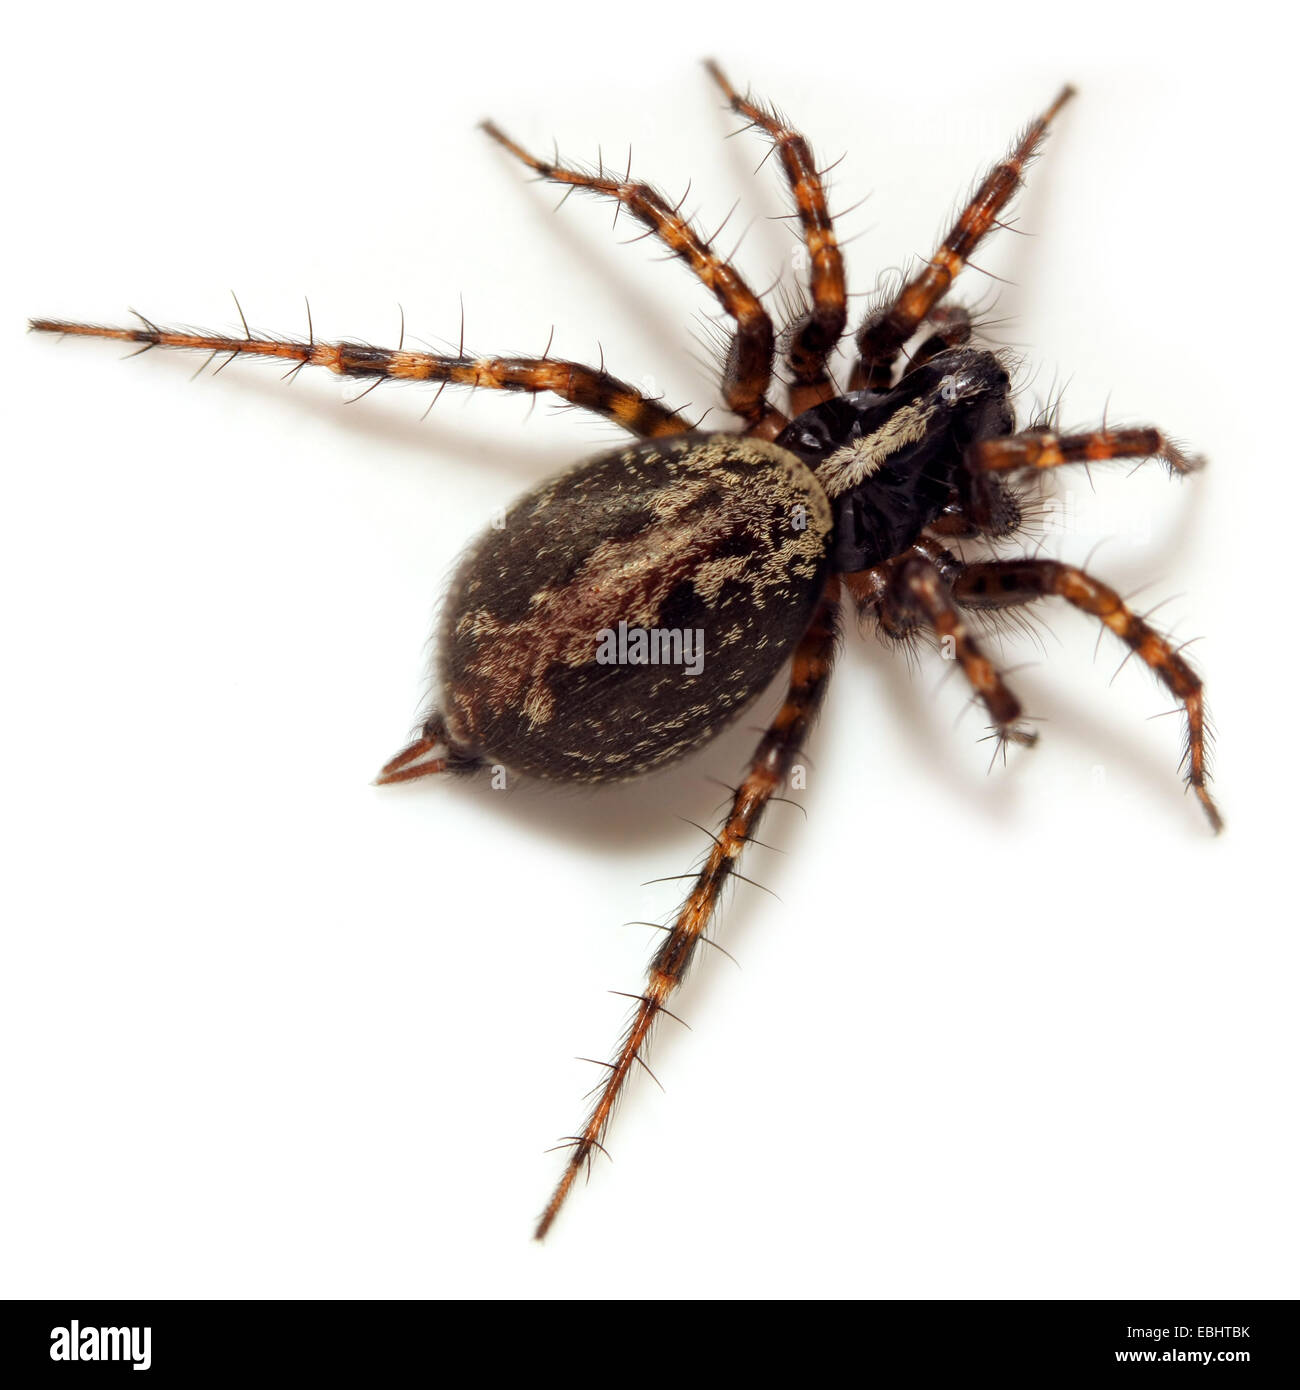 Female Funnel weaver (Textrix denticulata) on white background.  Funnel weavers are part of the family Agelenidae. - Stock Image